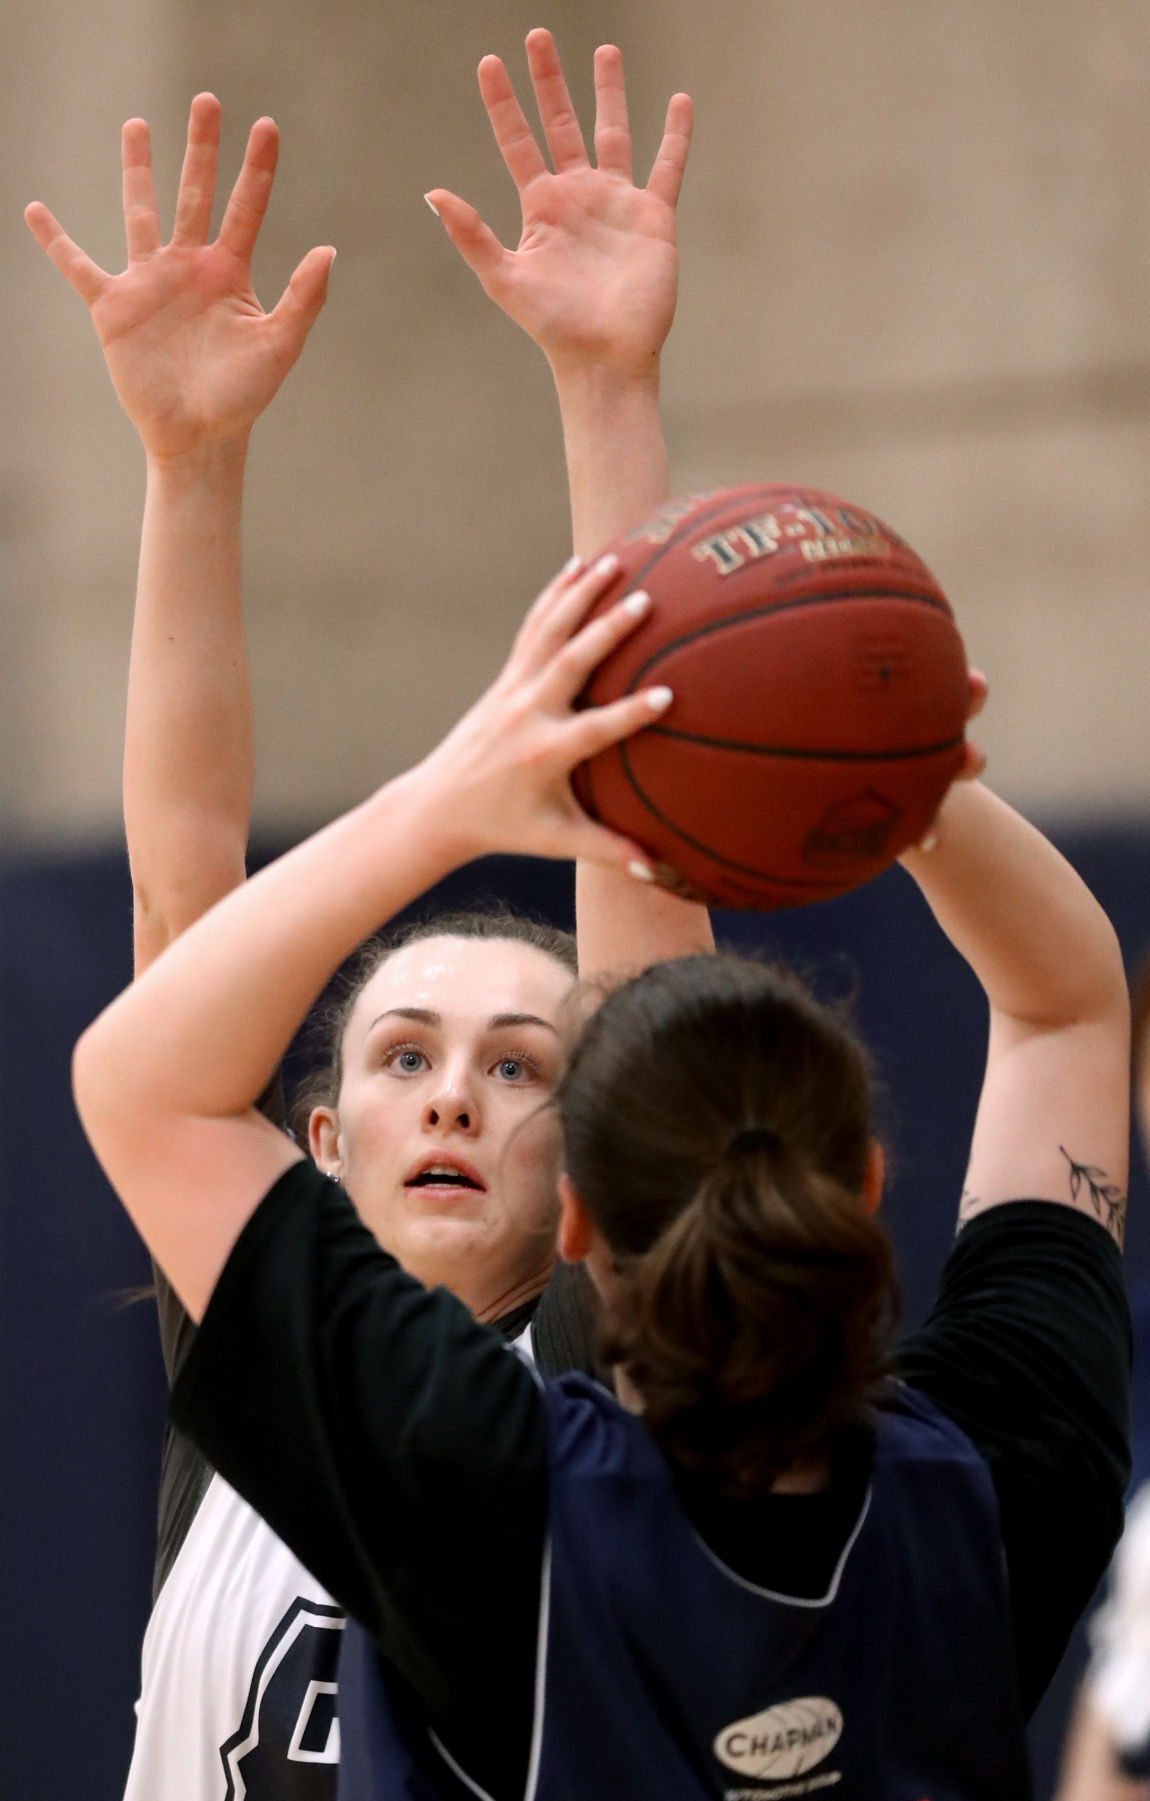 031420-spt-pima womens basketball-p2.jpg